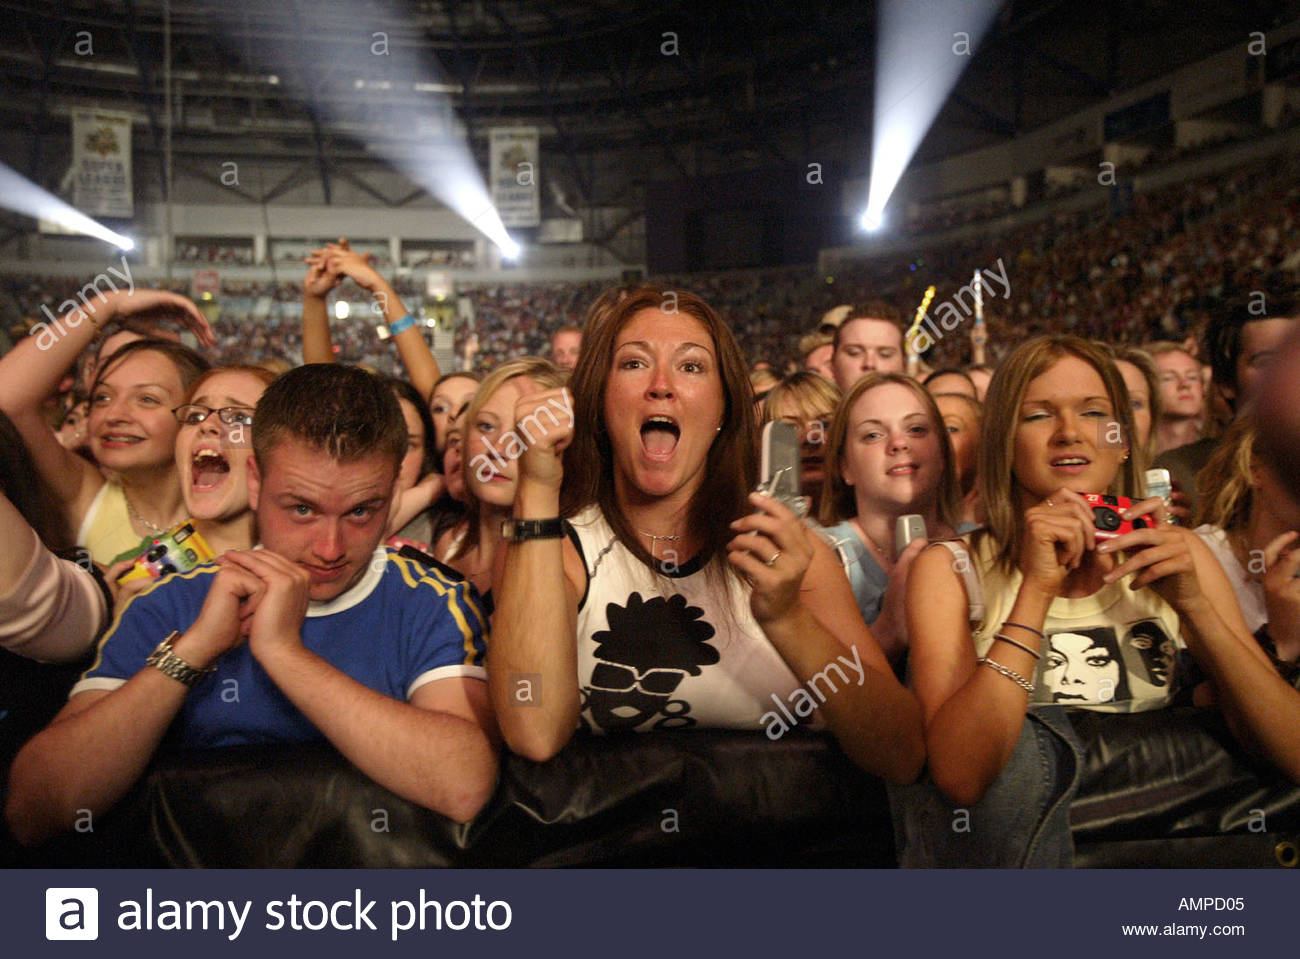 Fans at a concert in the Odyssey Arena - Stock Image